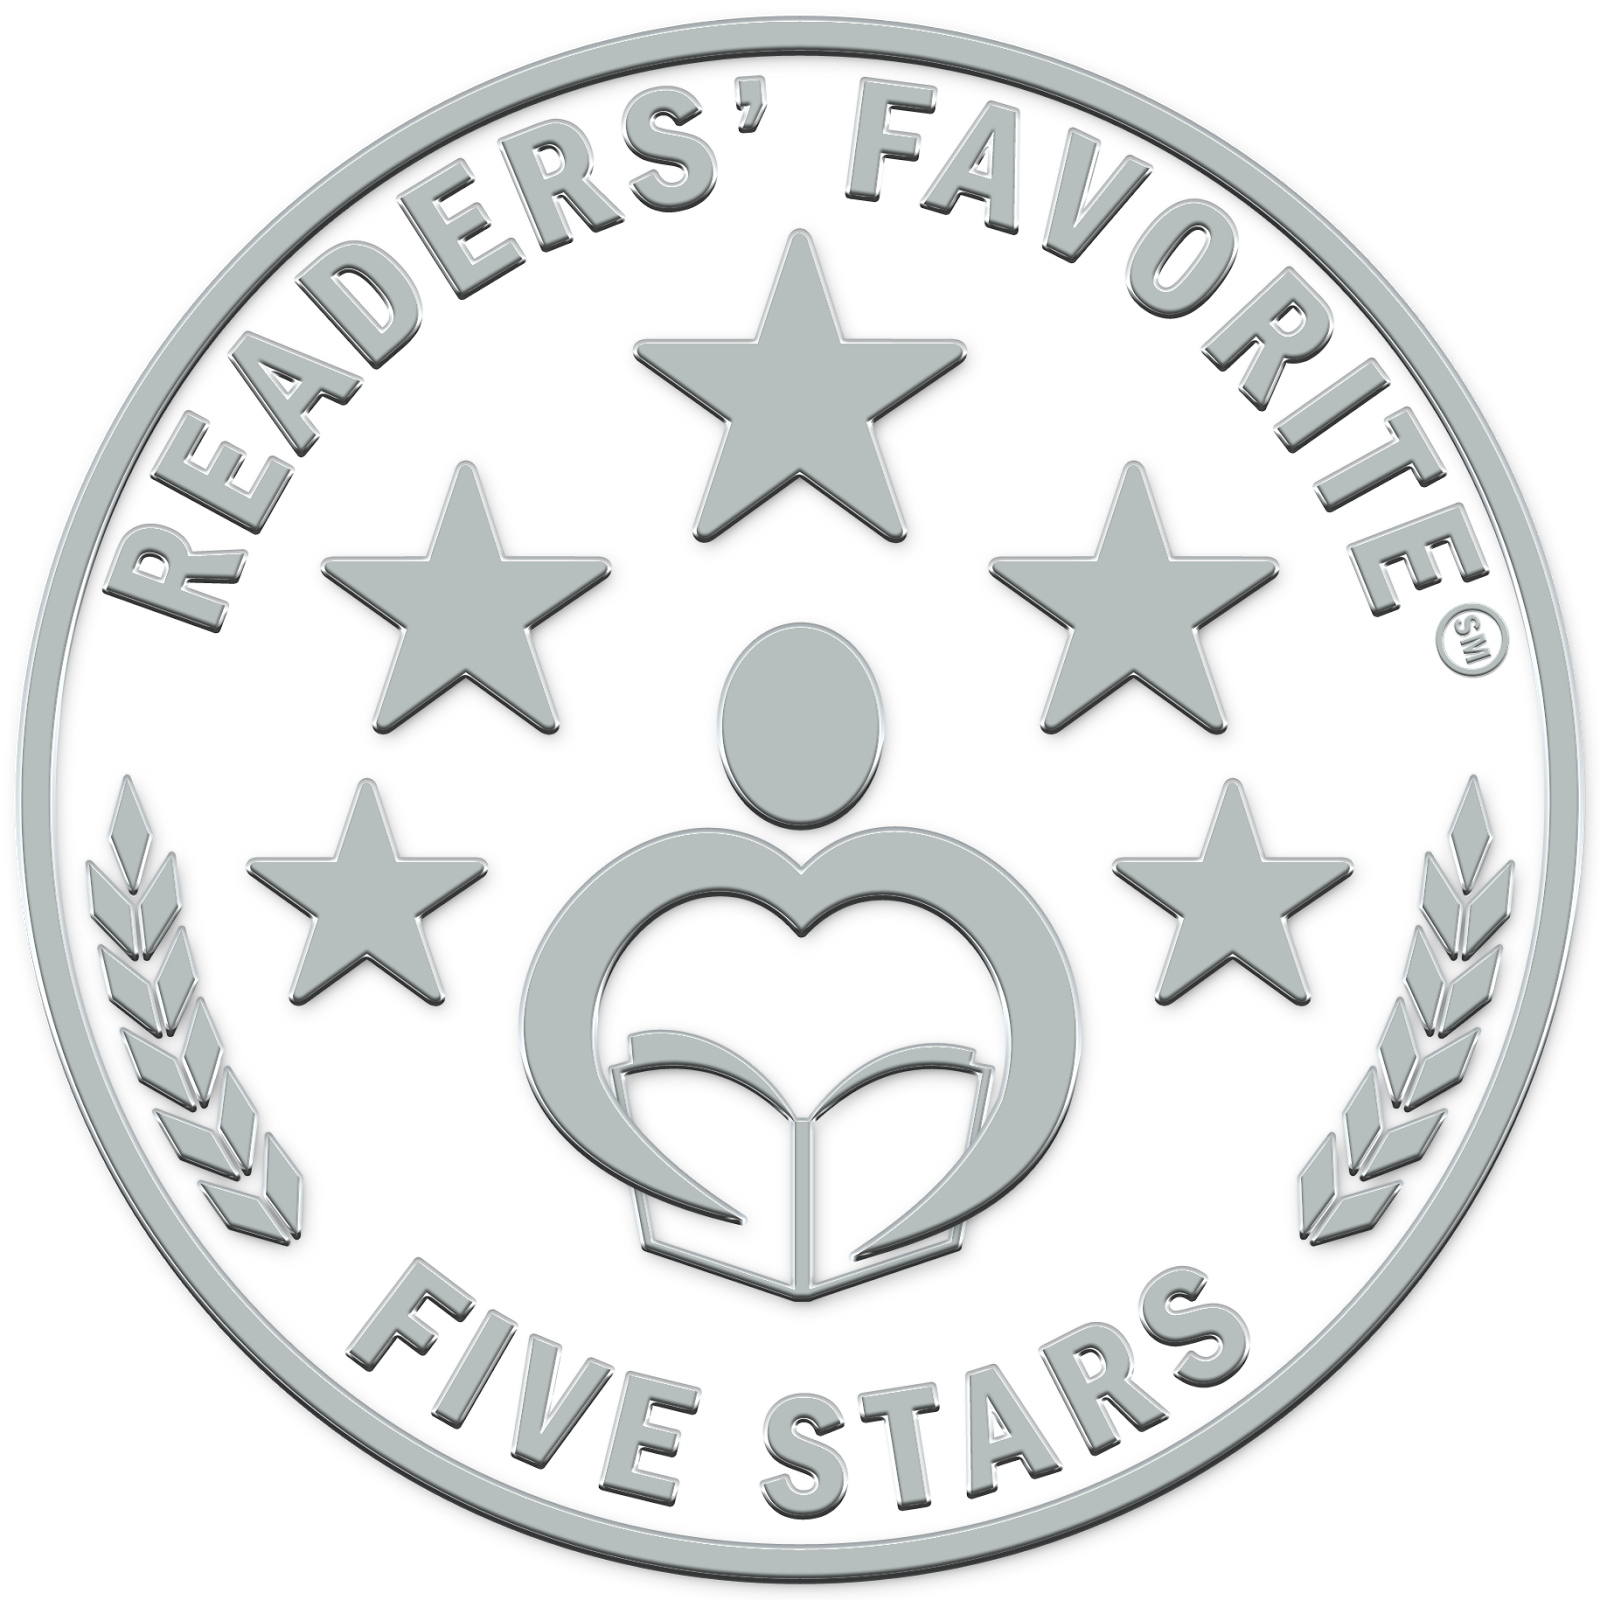 Mrs. D's books: 5 Star Readers' Favorite